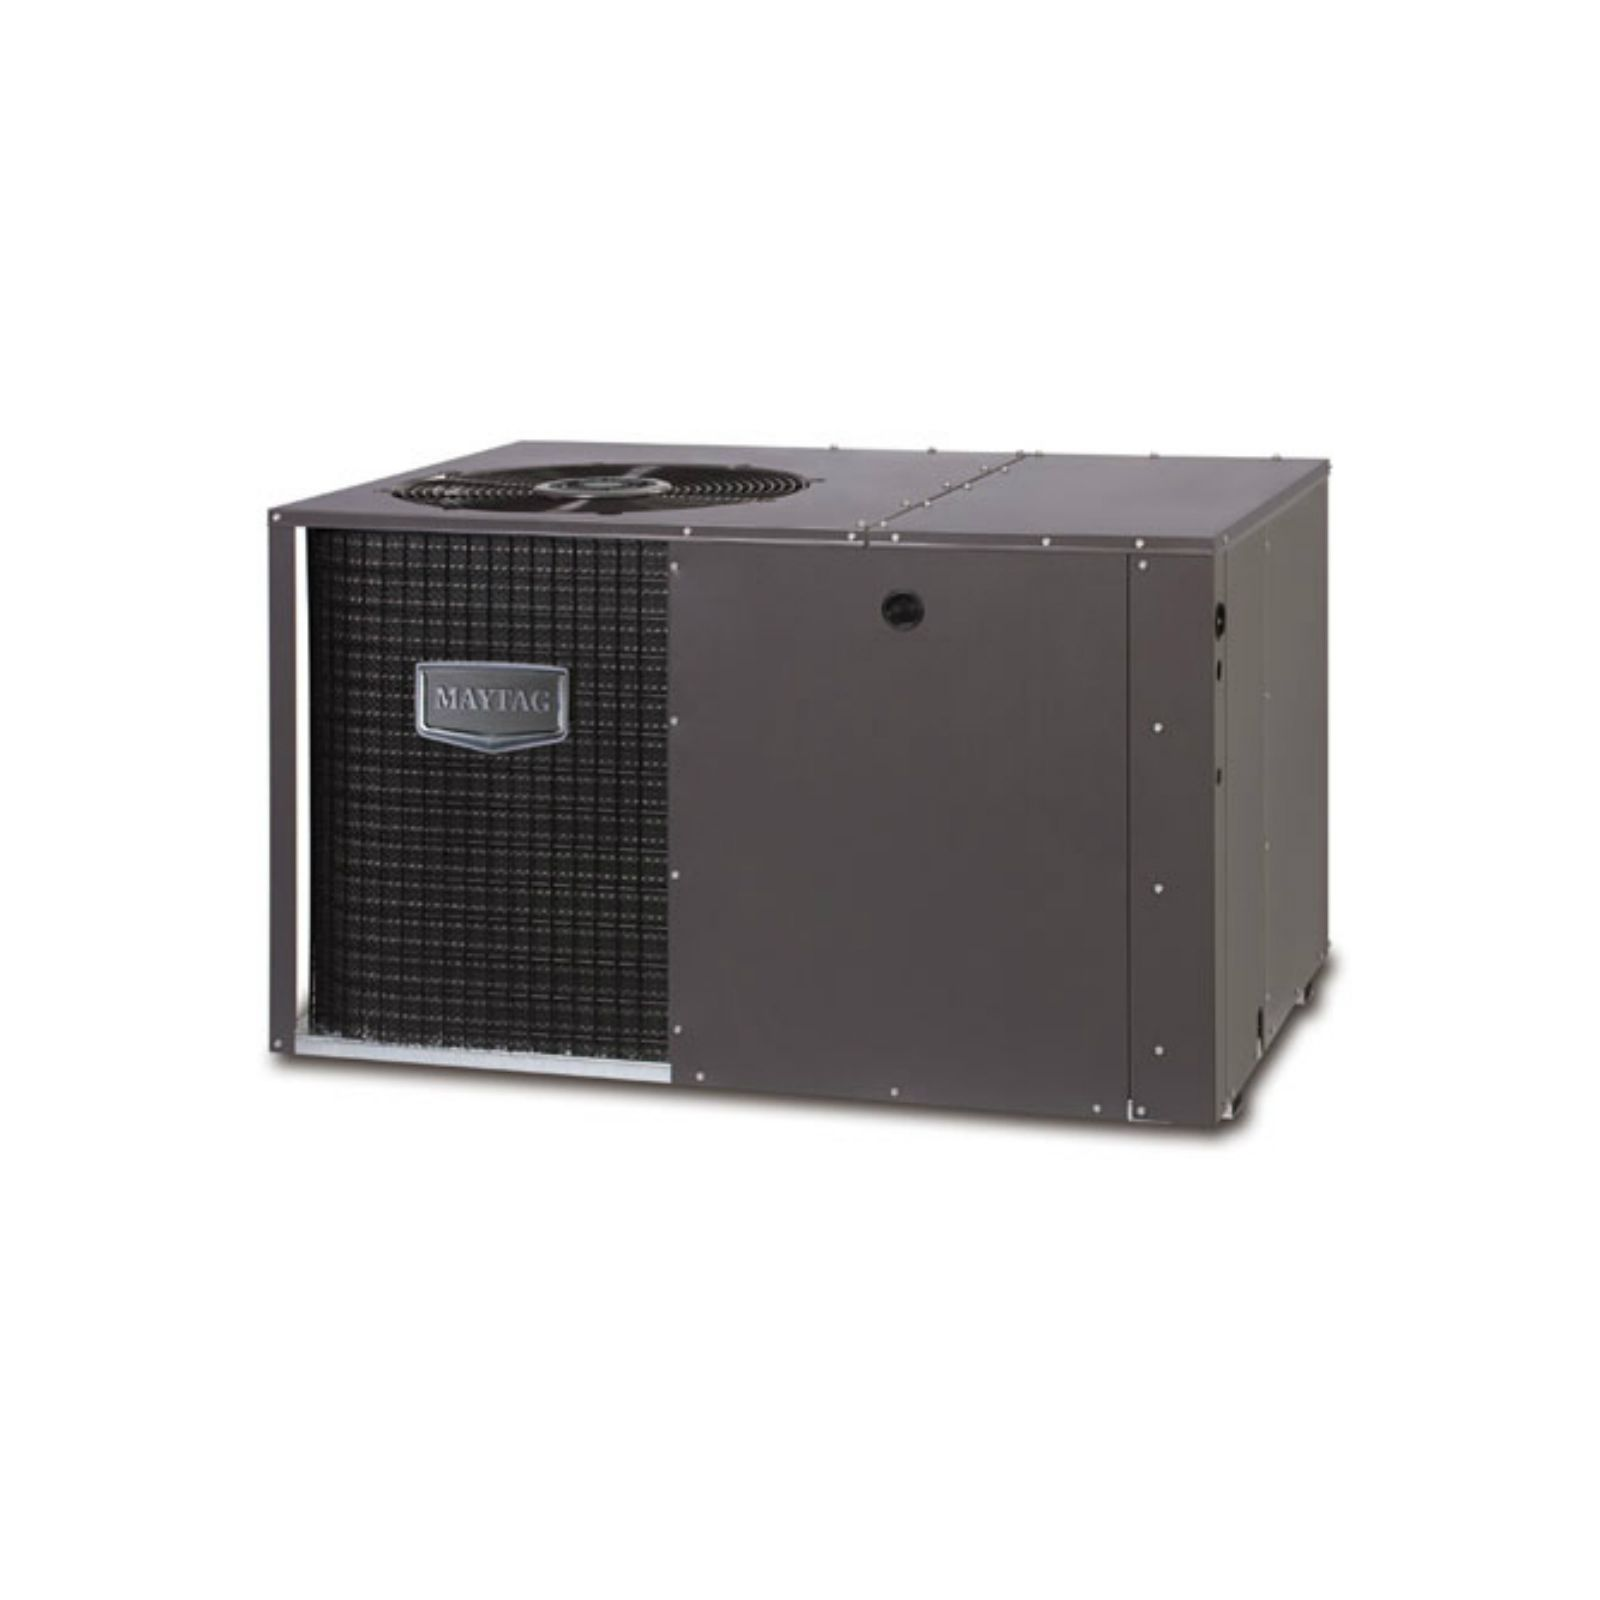 Maytag 920588PA - PPH2RFX24KA - 2 Ton 15 SEER M1200 High Efficiency Single Packaged Heat Pump, R410A